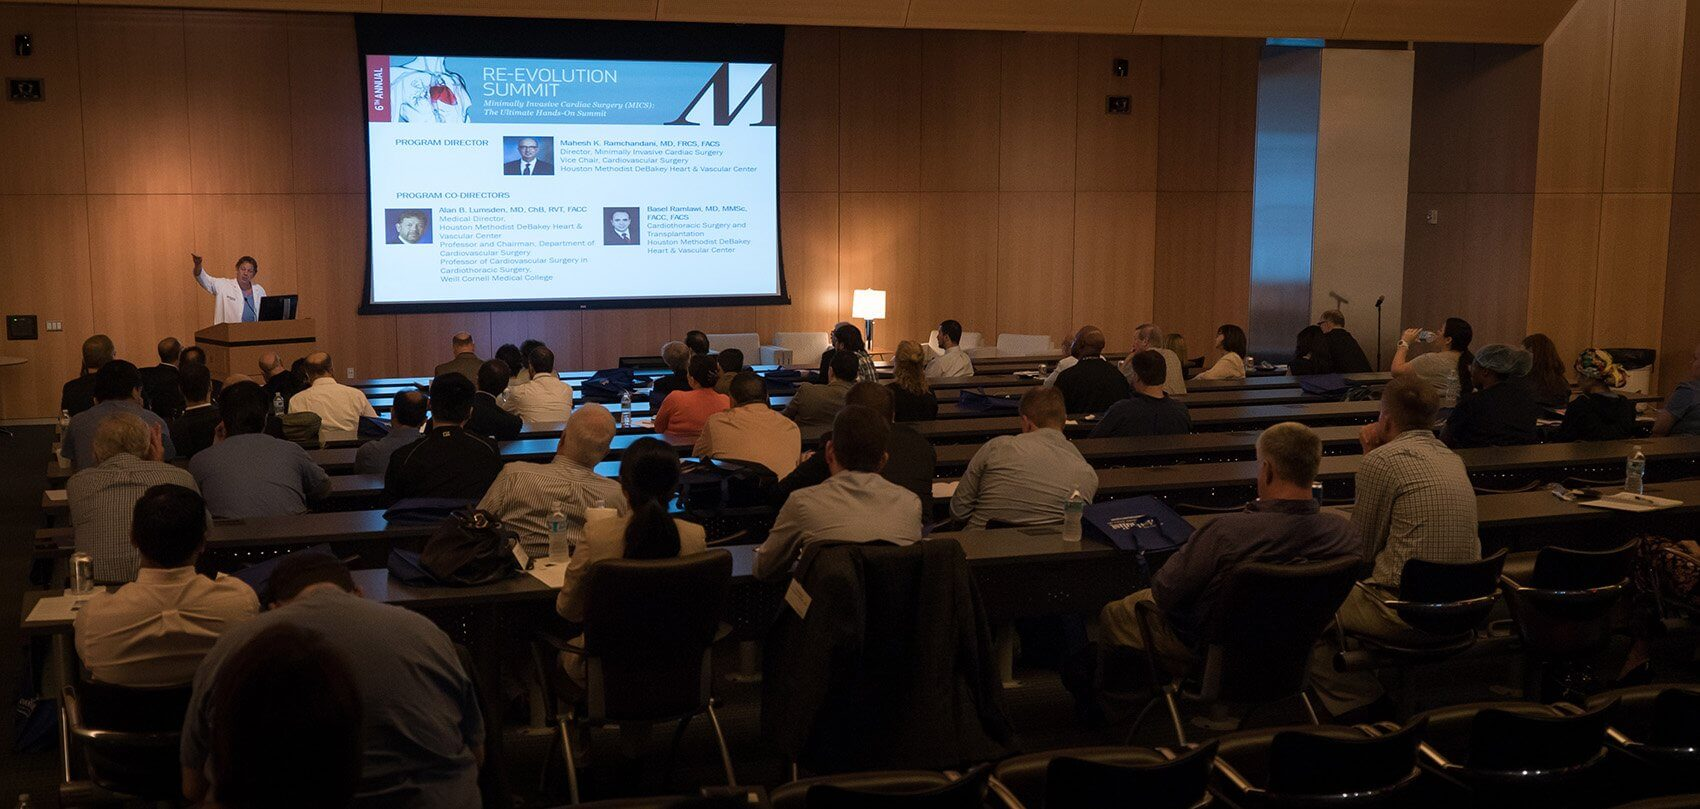 Morning classroom sessions, featuring a combination of didactic lectures, video demonstrations and panel discussions, provided a foundation for the hands-on workshops later in the day.